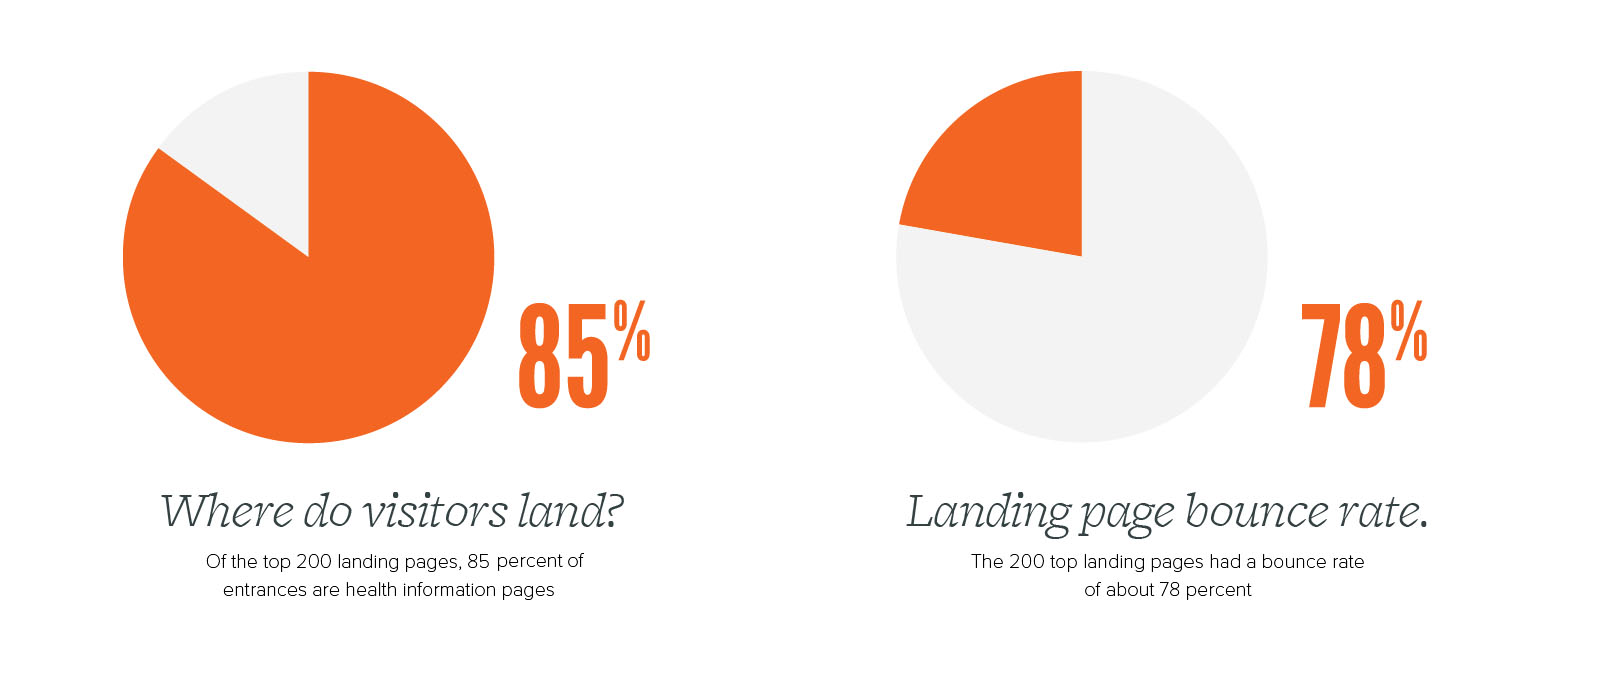 Pie charts showing where do visitors land (85%) and Landing page bounce rate (78%)